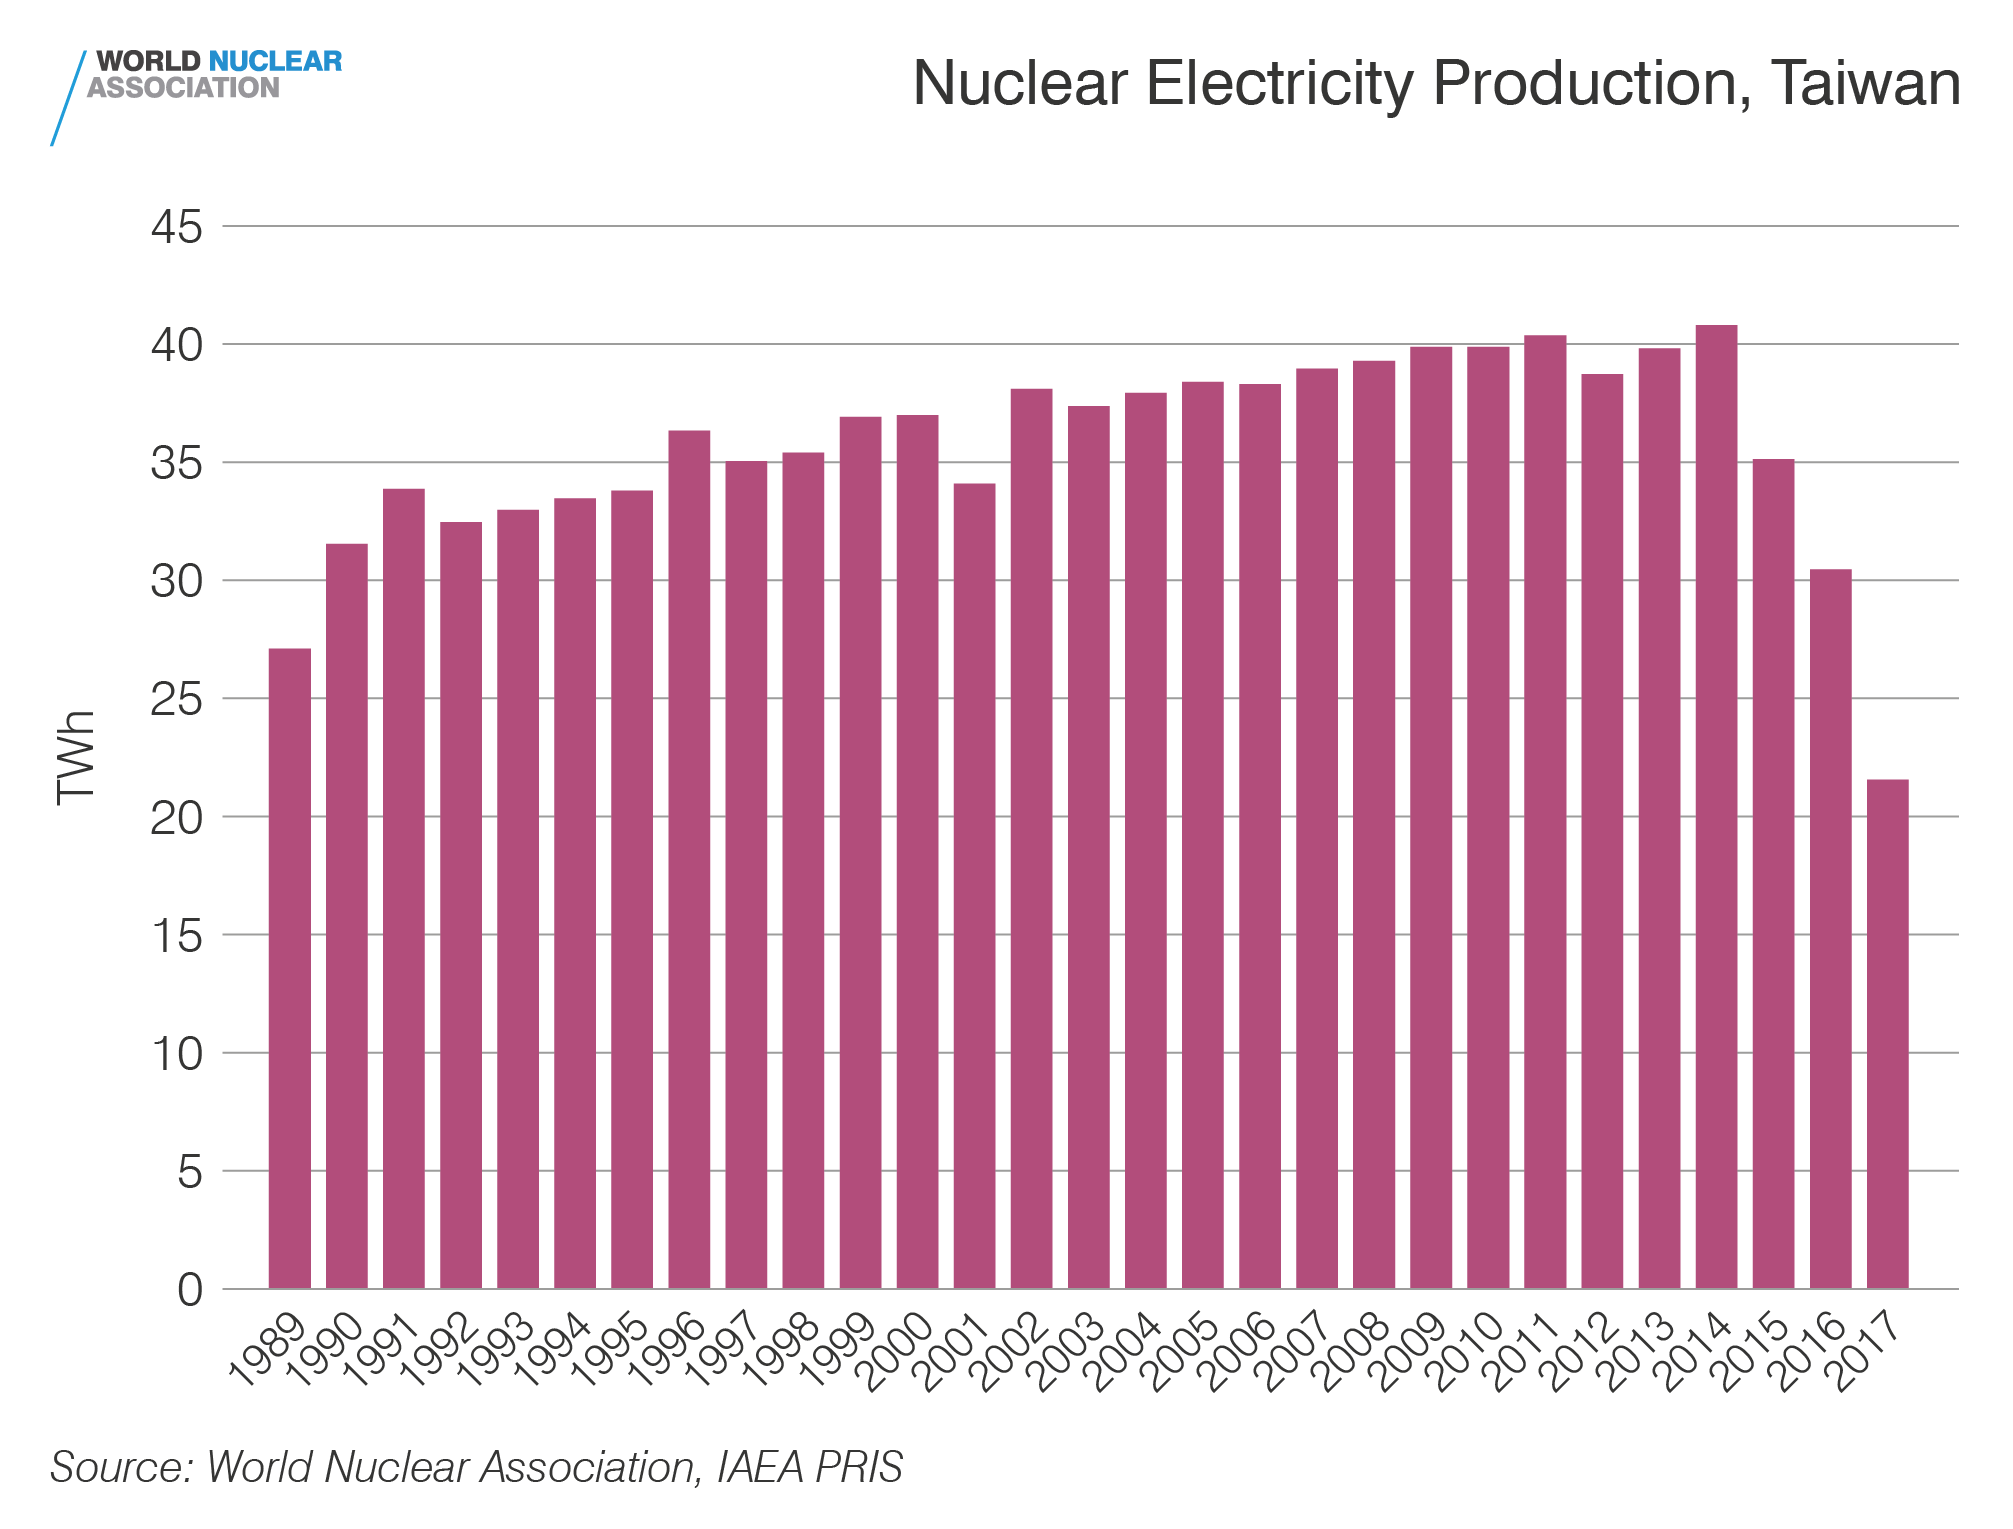 Nuclear electricity production, Taiwan, China